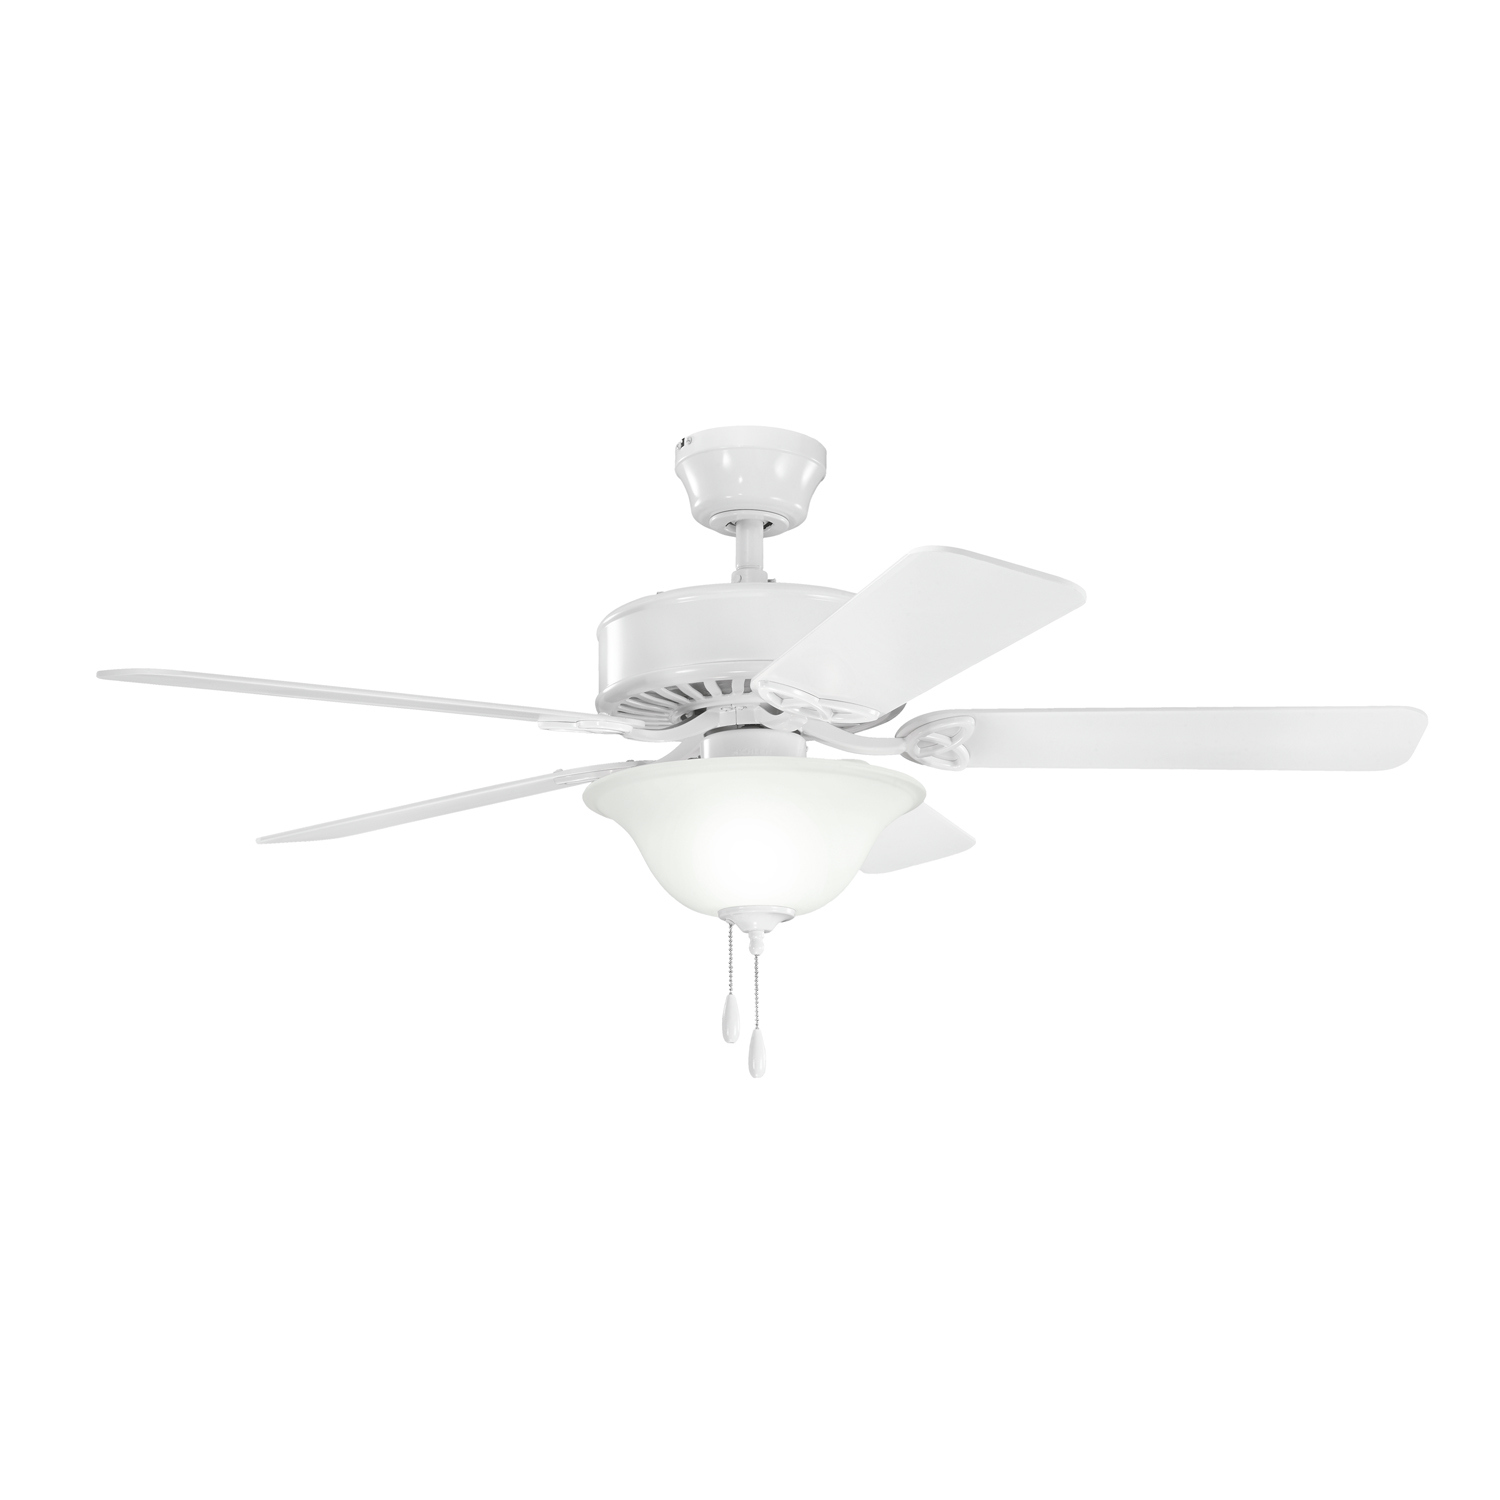 50 inchCeiling Fan from the Renew Select collection by Kichler 330110WH